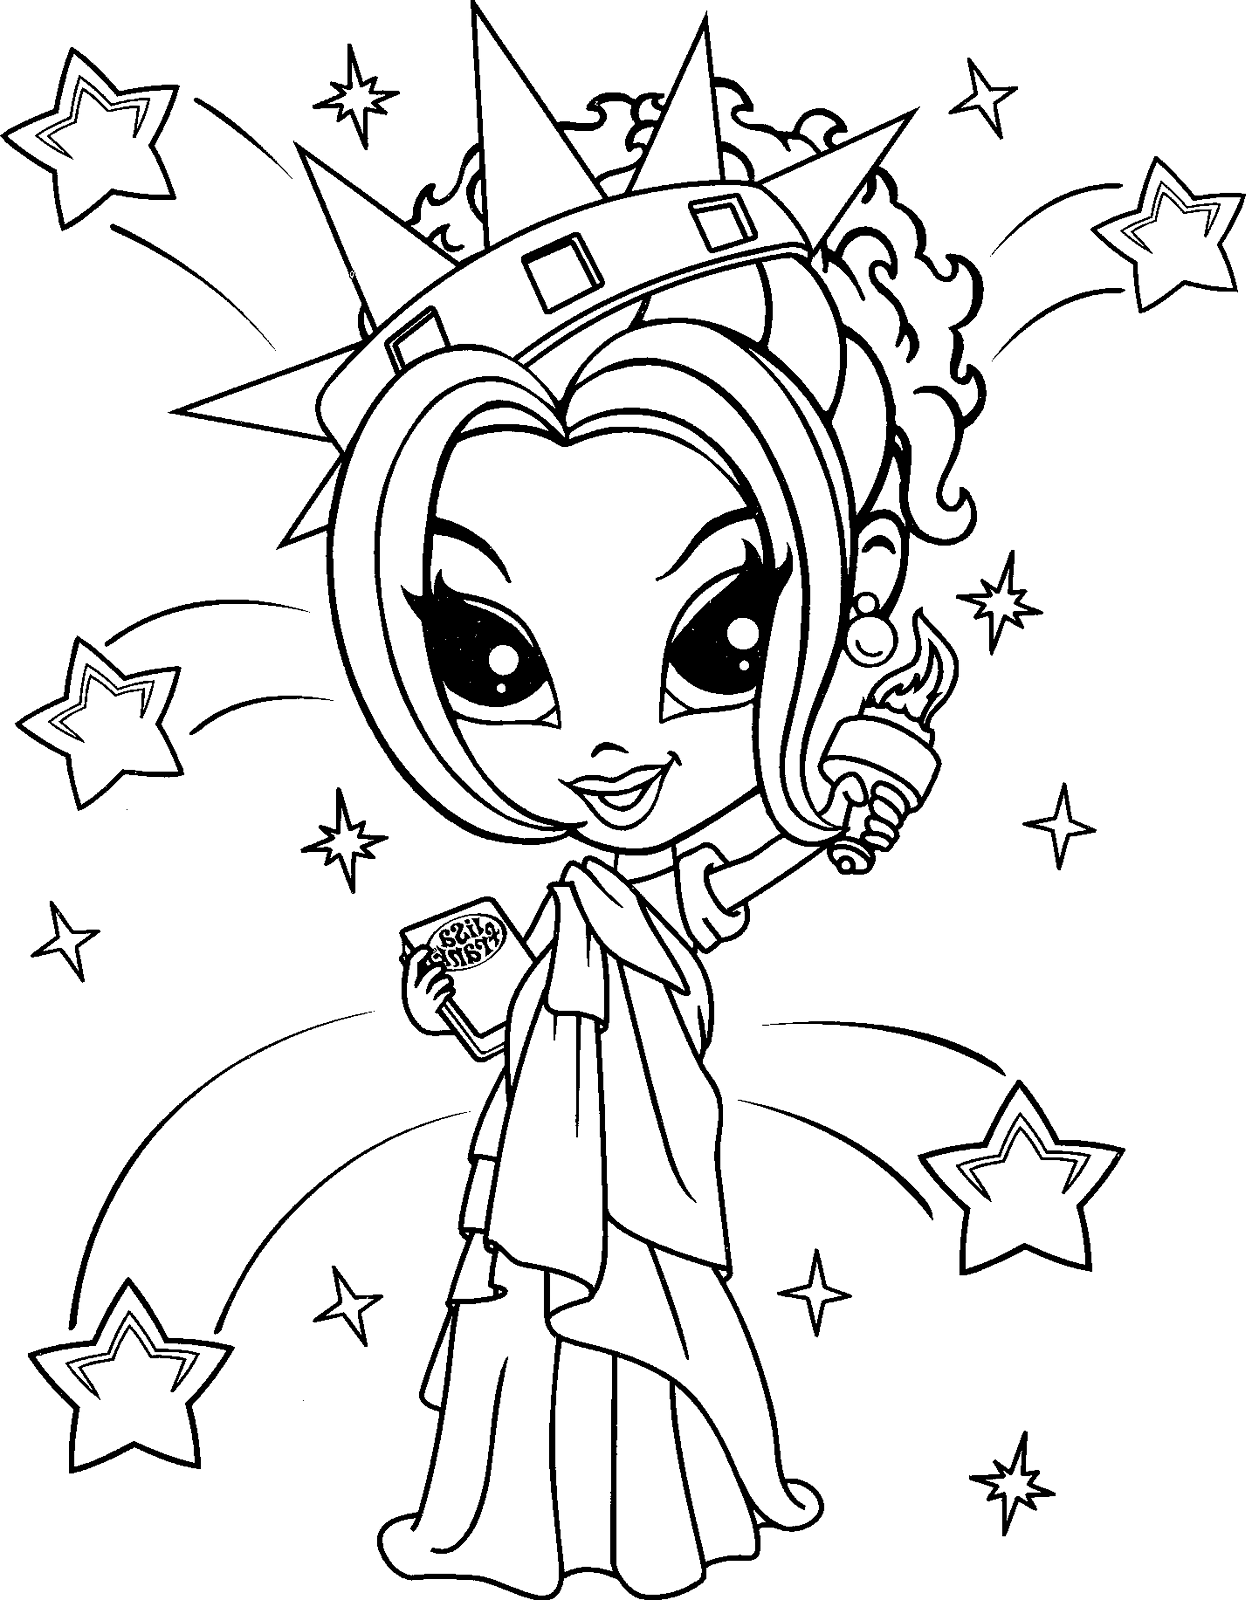 Lisa Frank Coloring Pages Usable | Educative Printable